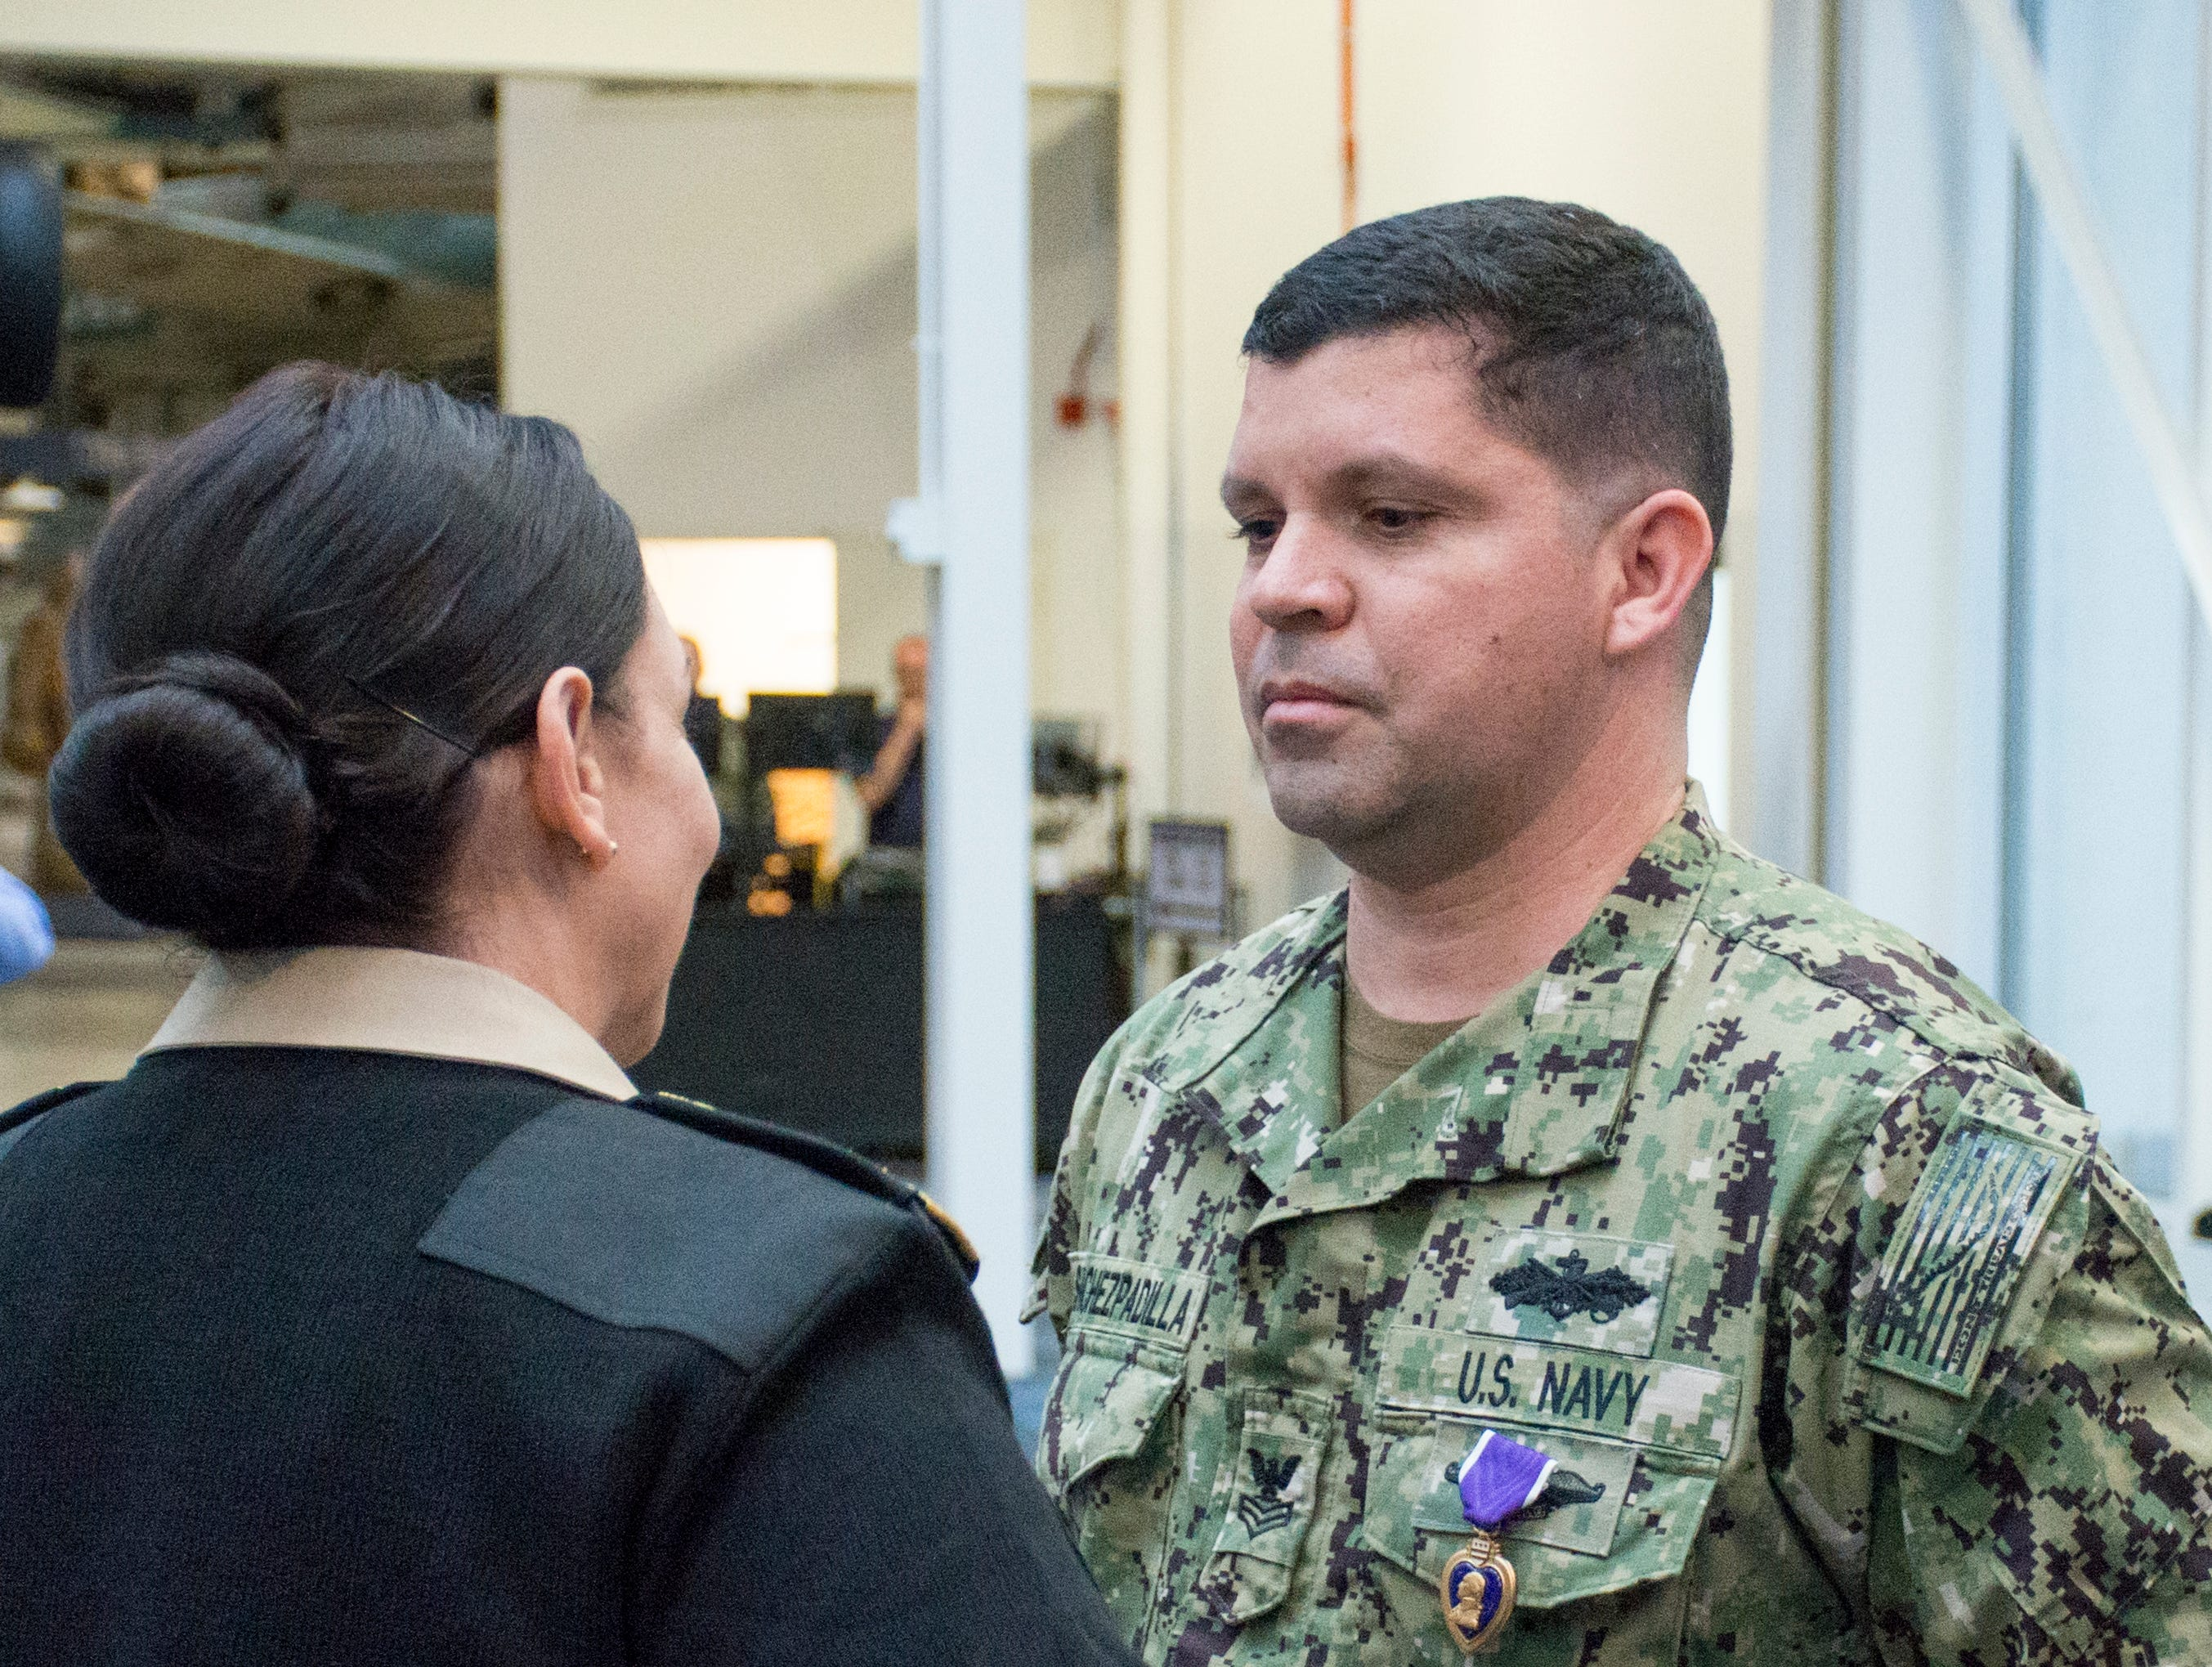 Rear Adm. Tina Davidson, left, presents Navy Hospital Corpsman 1st Class Eduardo Sanchez-Padilla the Purple Heart during a ceremony at the National Naval Aviation Museum in Pensacola on Wednesday, January 23, 2019.  Sanchez-Padilla was wounded in Afghanistan in 2009.